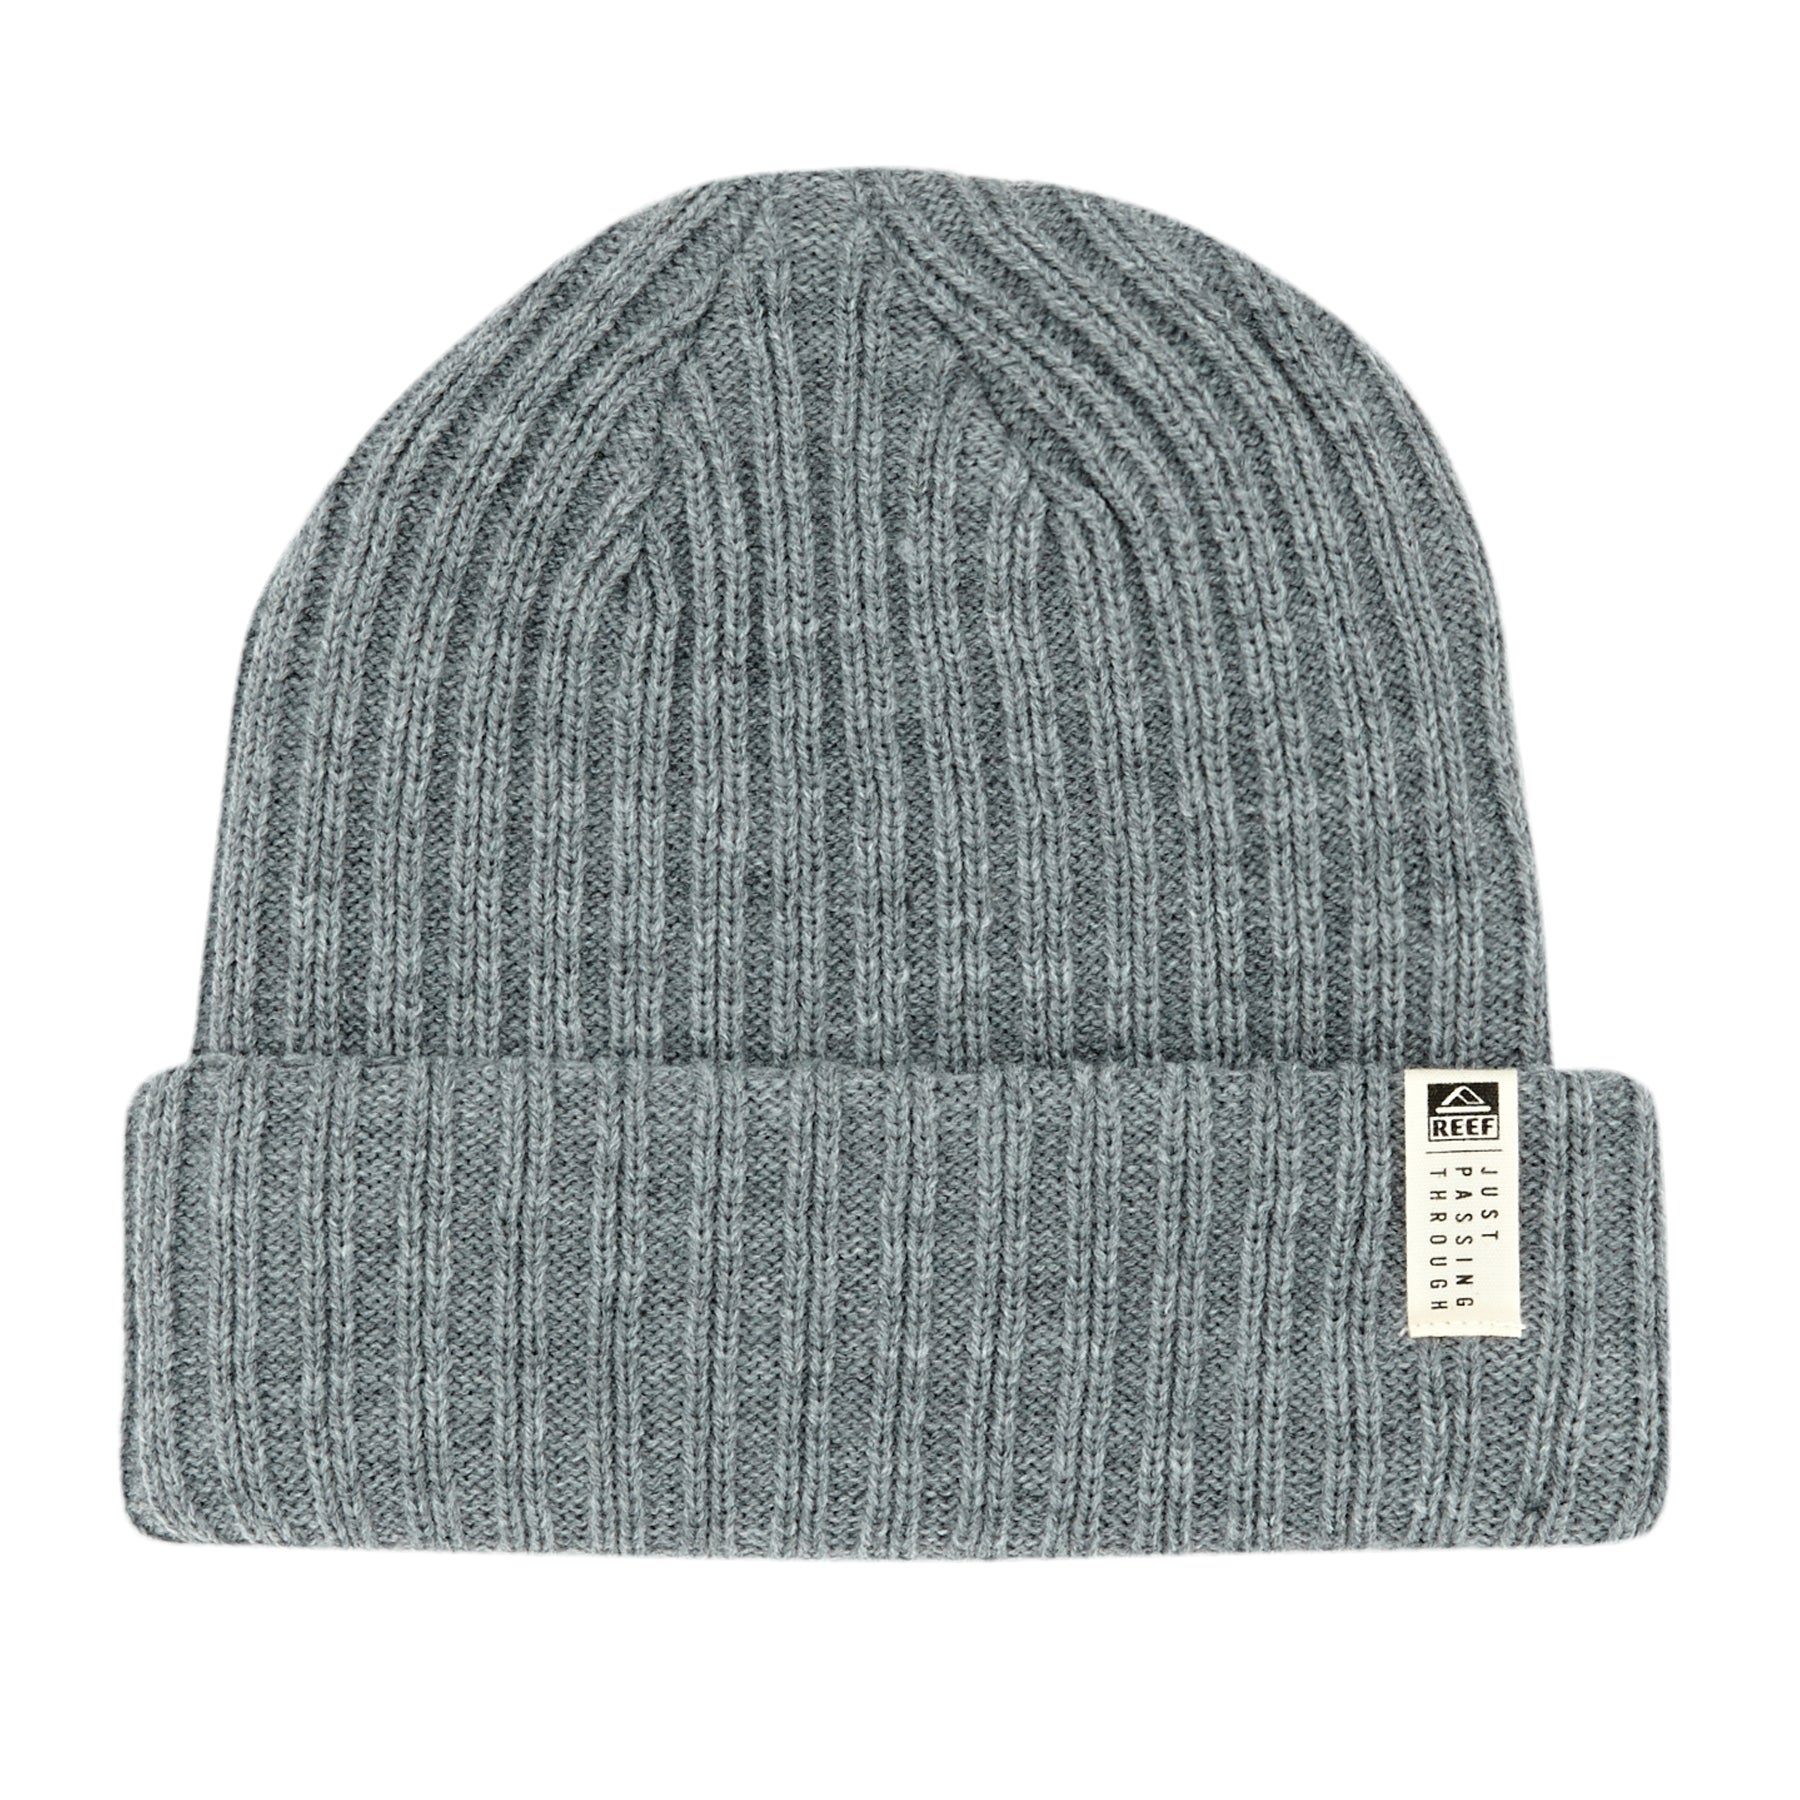 Gorro Reef Mcclurg II - Heather Grey